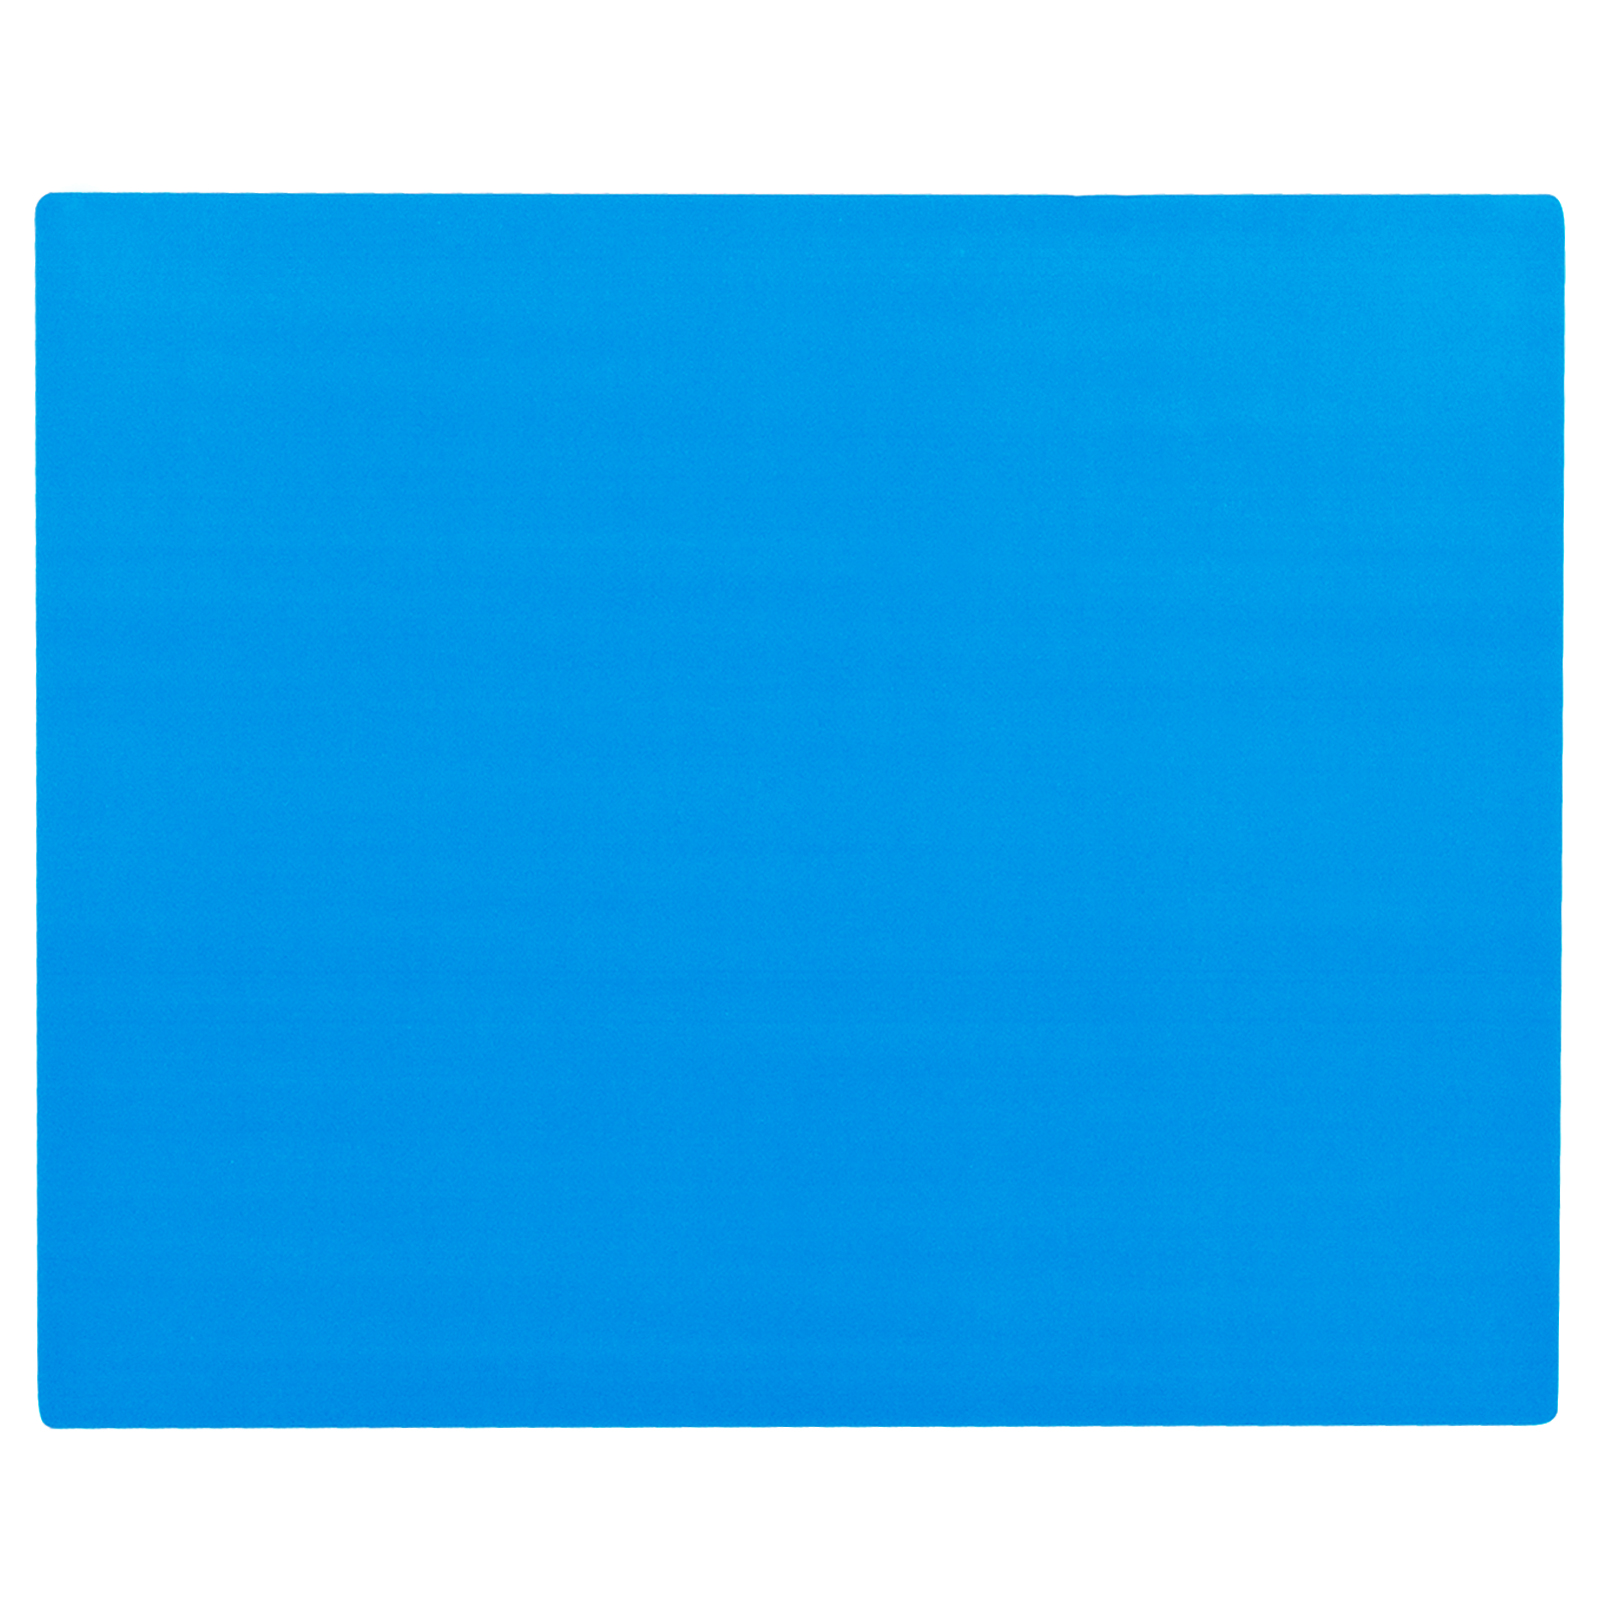 Ocean blue color chart pictures to pin on pinterest for Colors that go with ocean blue